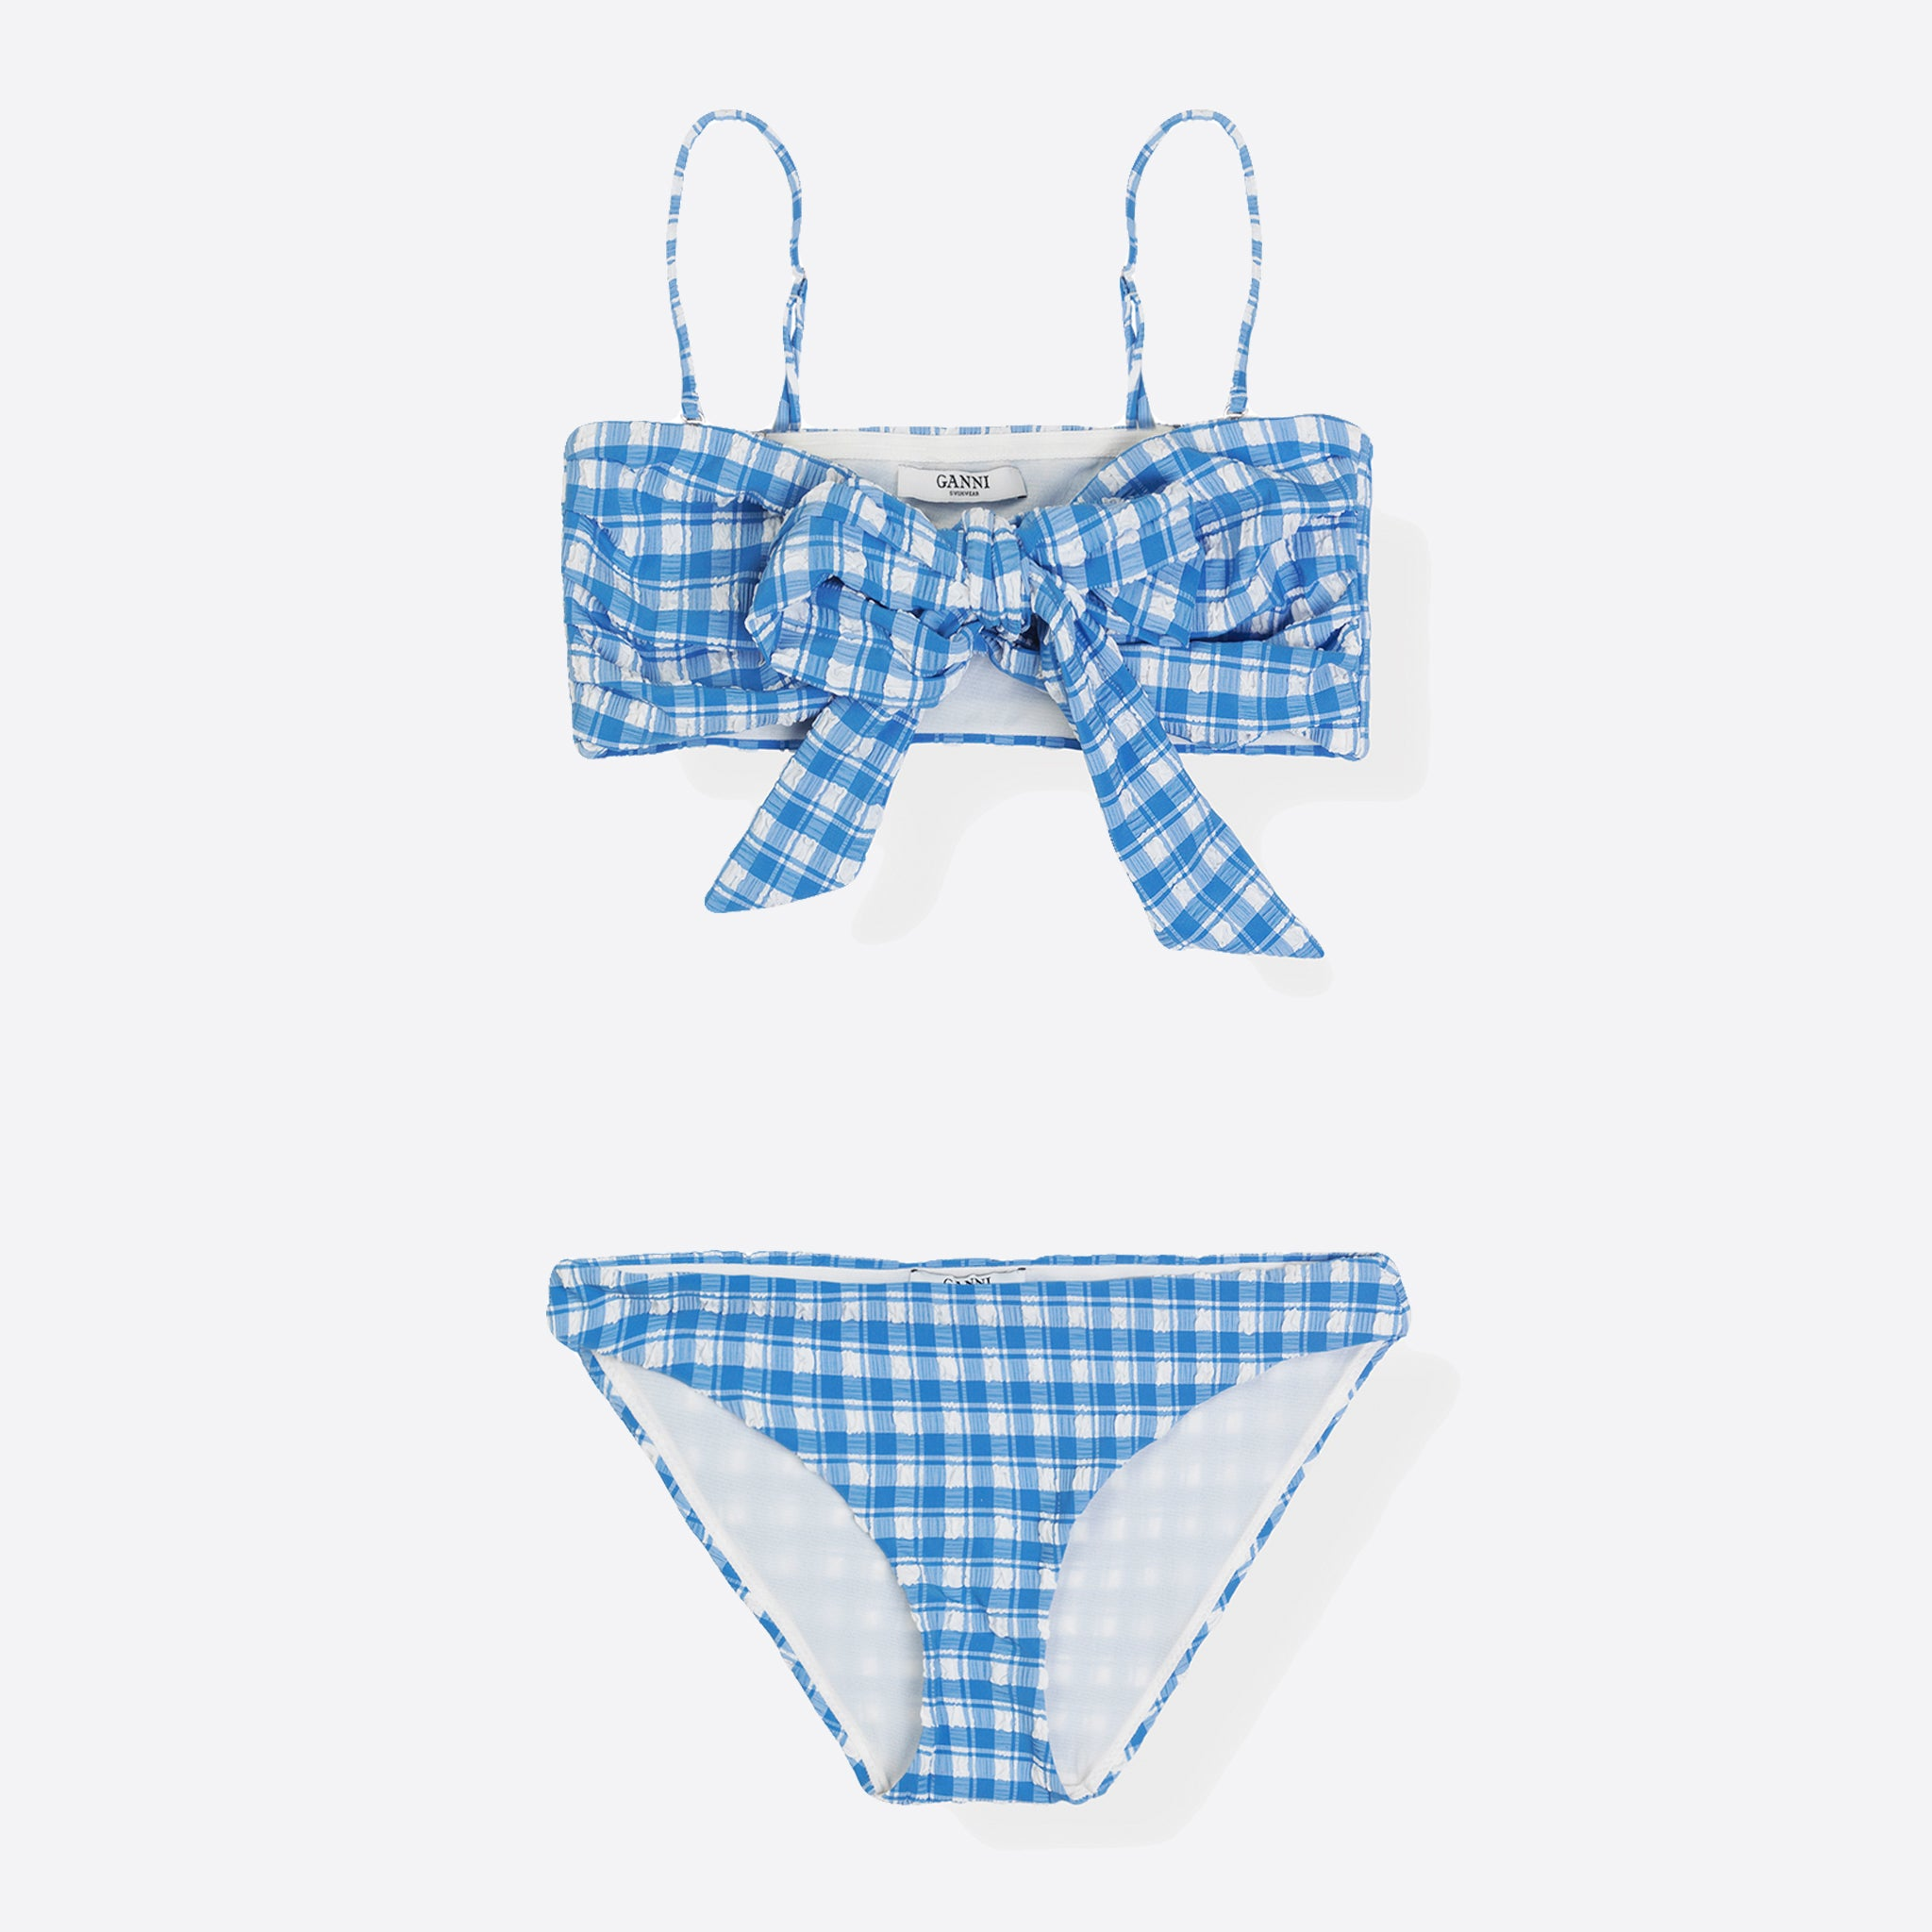 e4591ce293 Ganni Jewett Seersucker Wrap Bikini in Lapis Blue — Our Daily Edit